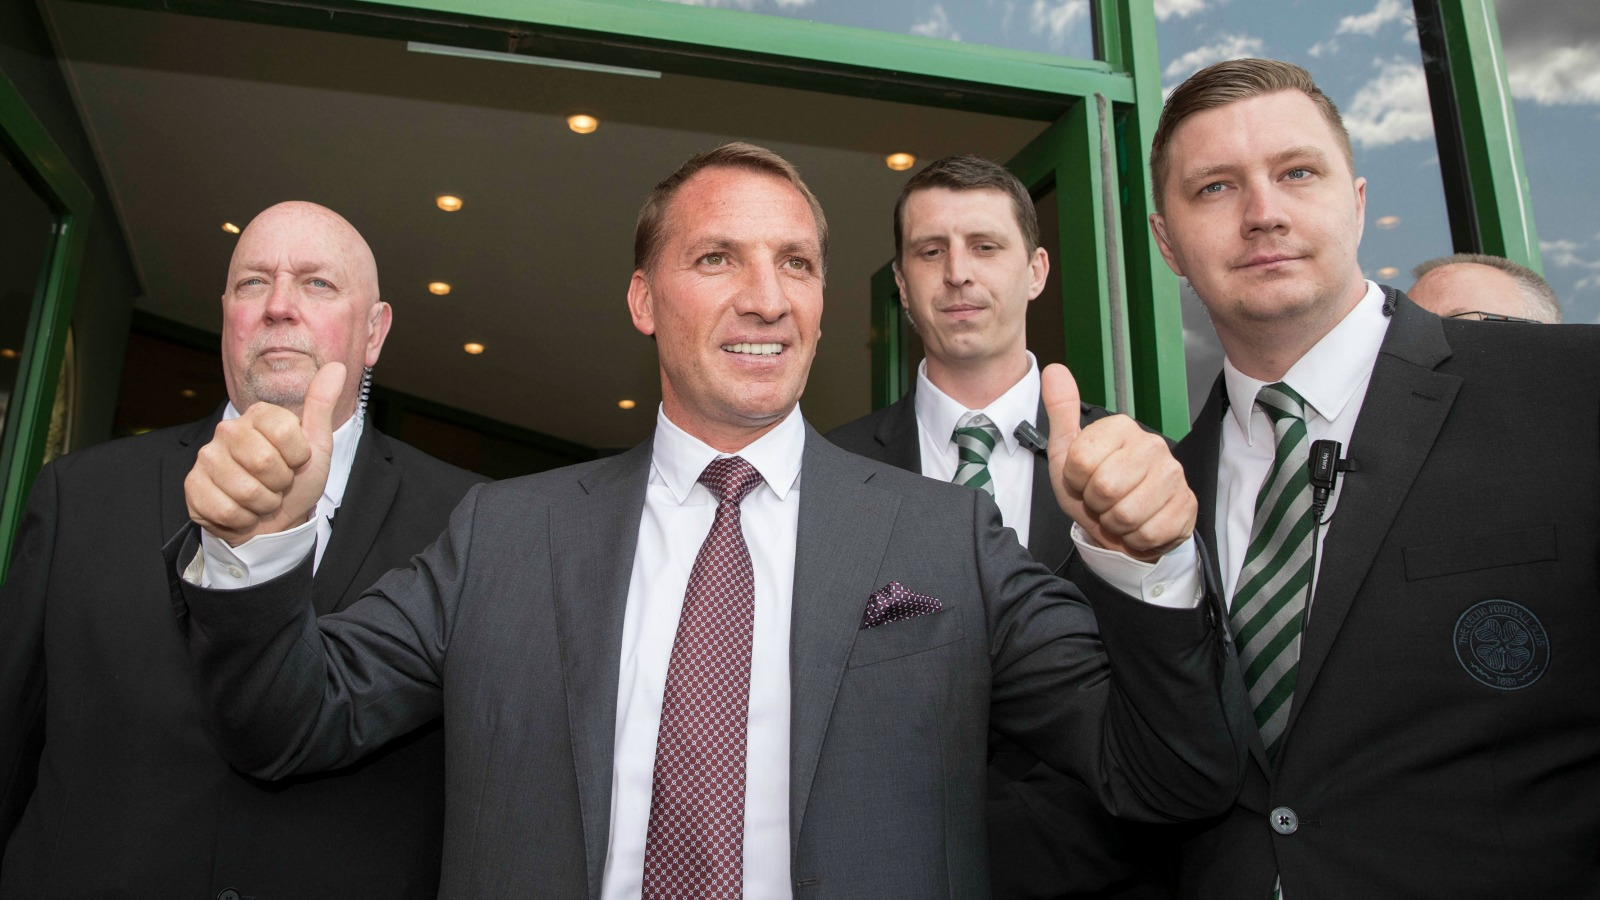 About the semi-pro team from Gibraltar that beat Celtic in Brendan Rodgers' first match